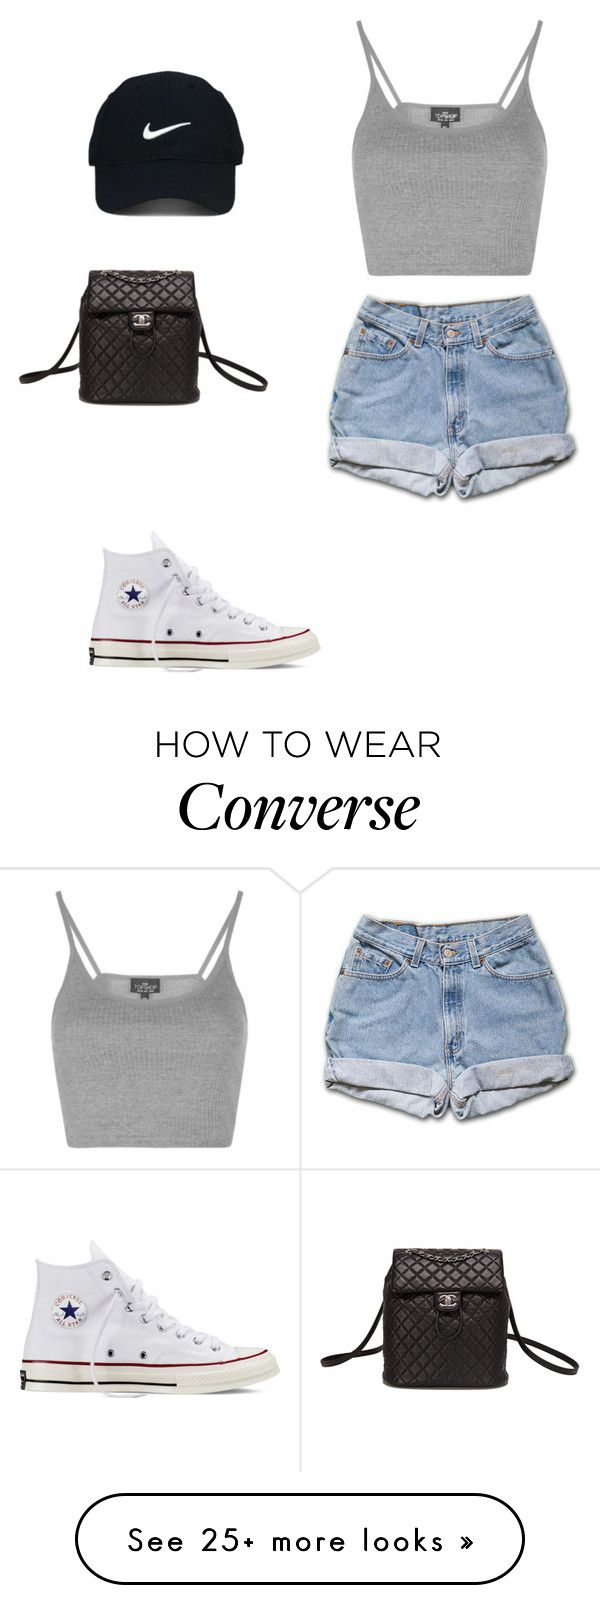 Untitled #125 by gissellesilva on Polyvore featuring Topshop, Converse, Nike Golf and Chanel